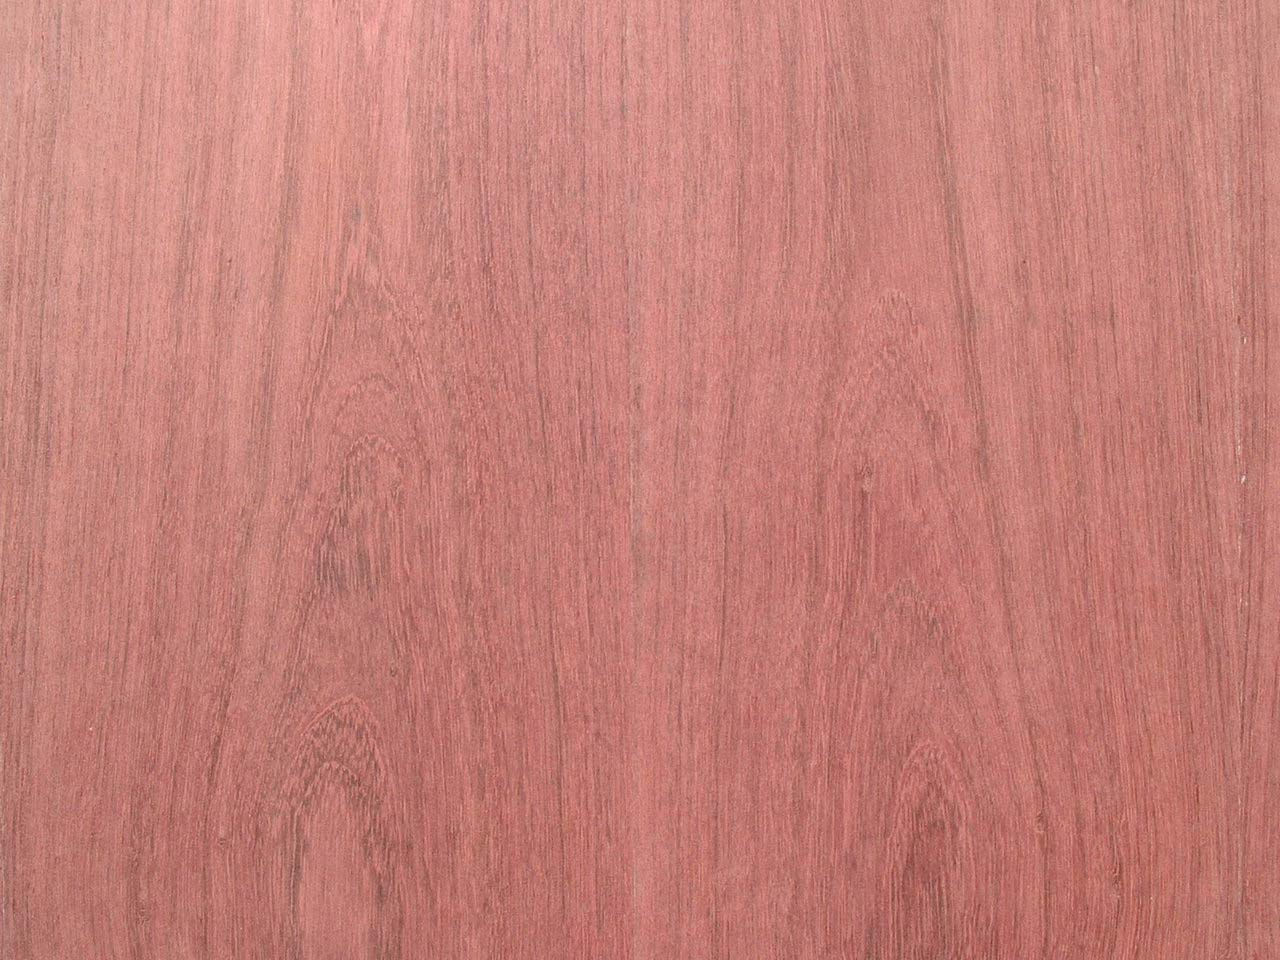 Dark wood grain texture car interior design for Purple heart flooring